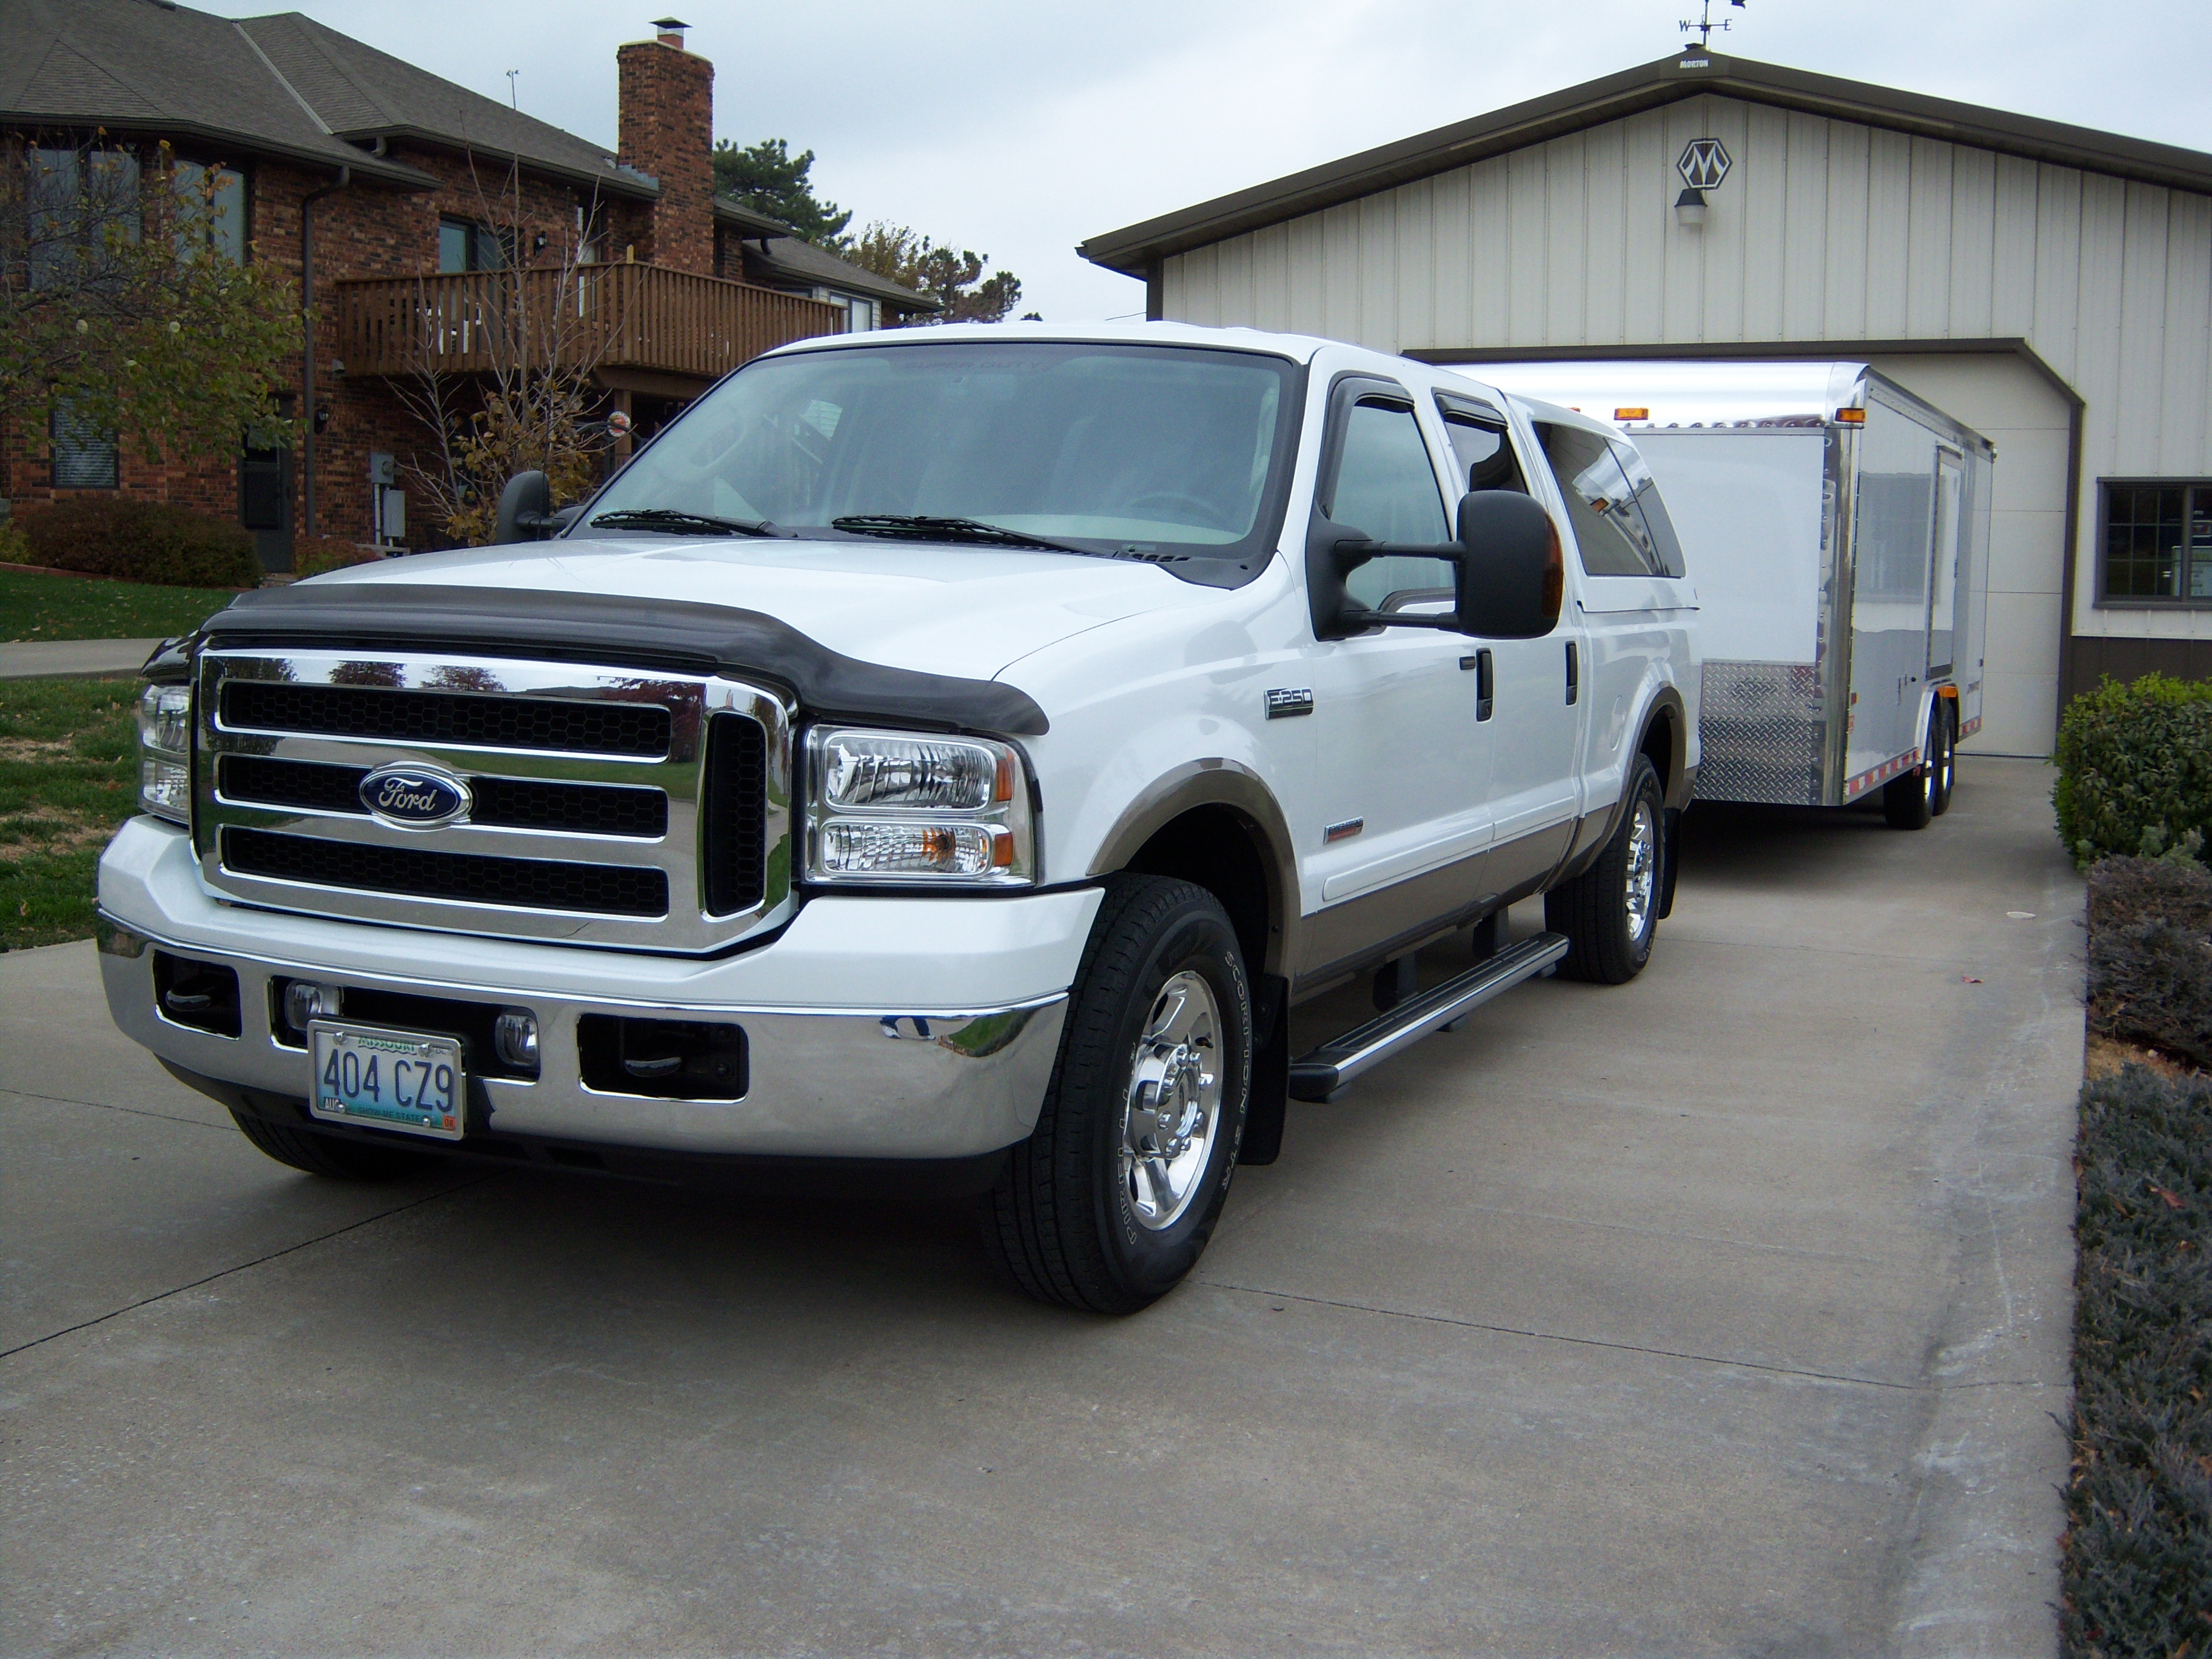 2013 Ford F250 Camper Shell Autos Post